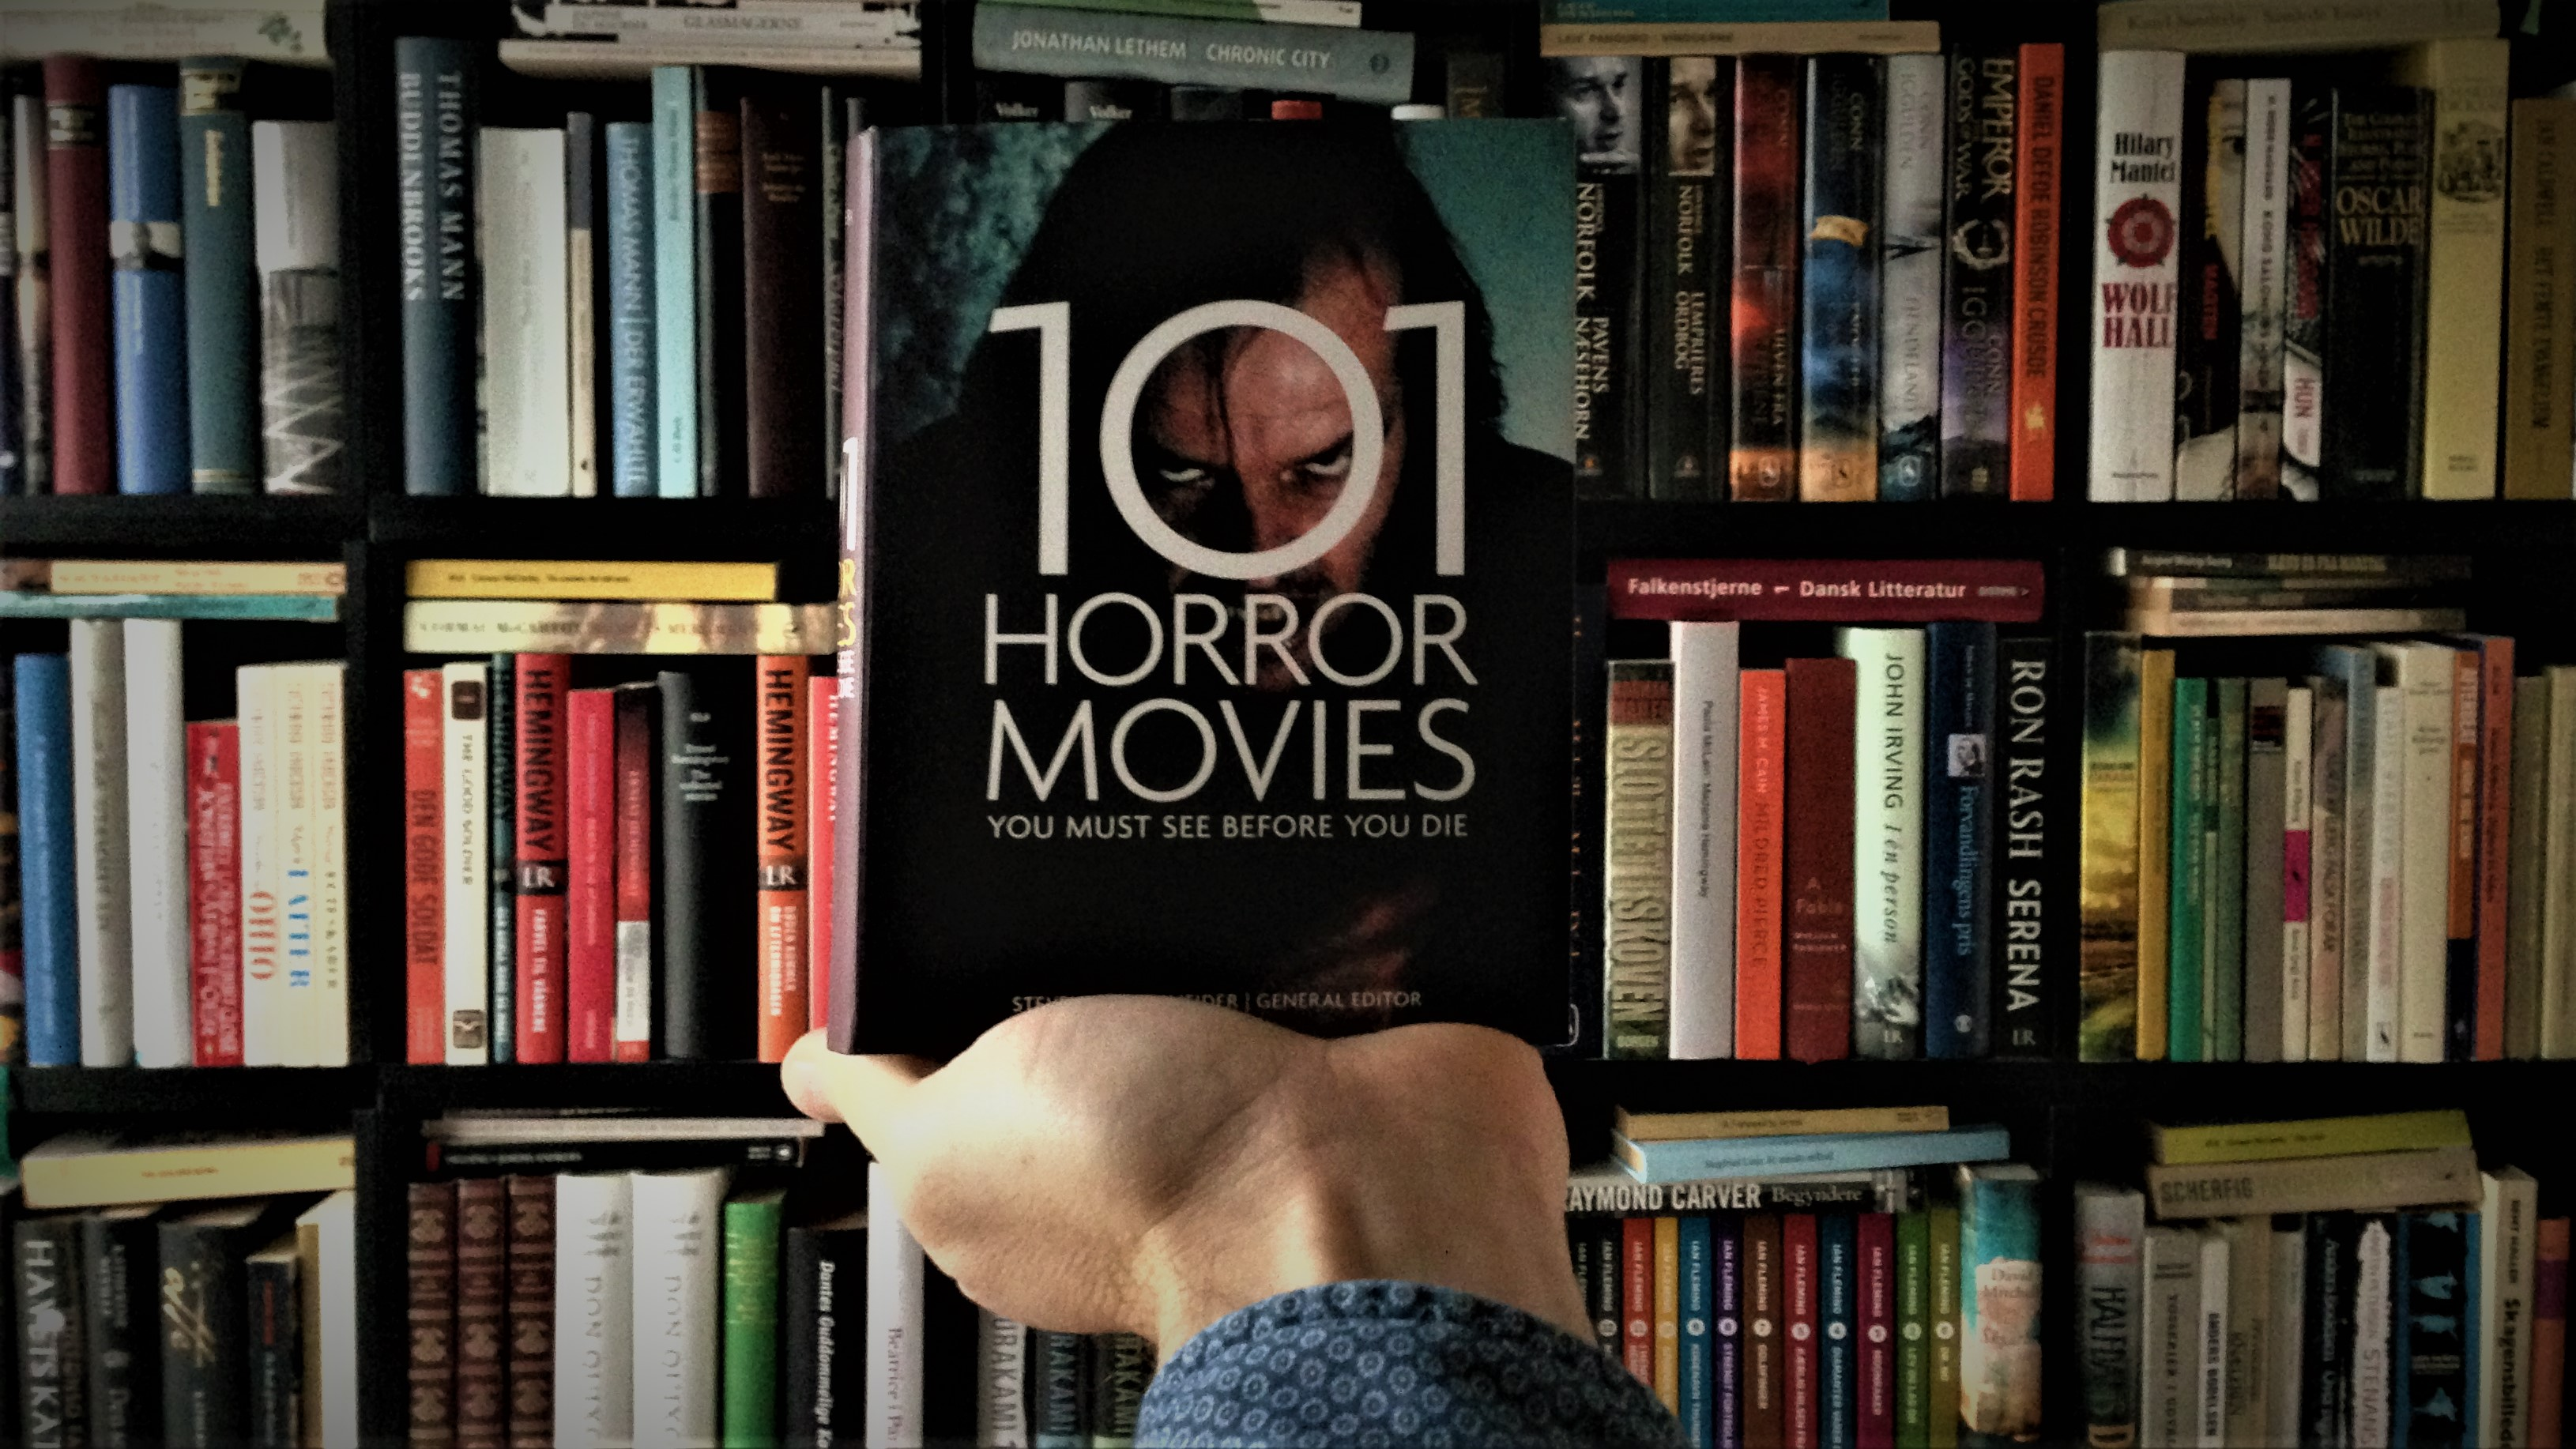 101 Horror Movies You Must See Before Your Die - Anmeldelse - Steven Jay Schneider - Filmbog - Horror - Fiktion & Kultur - Plusbog (6)